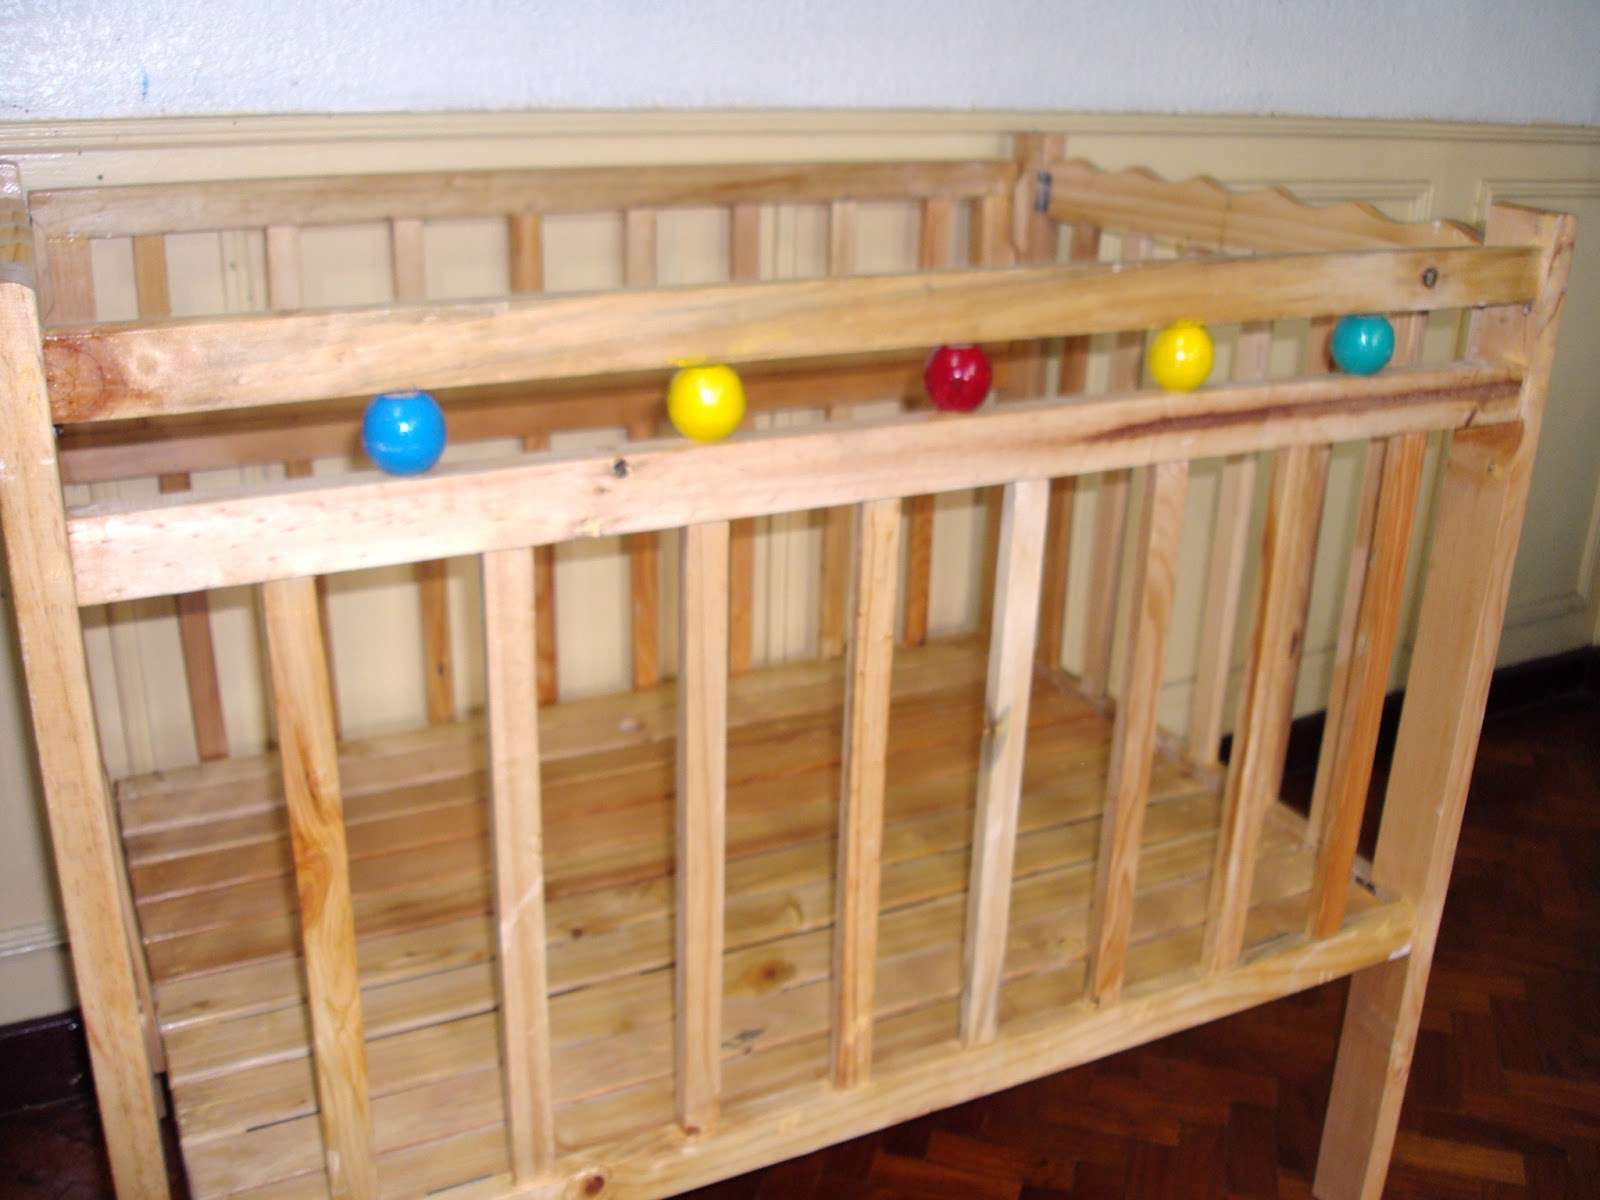 Gocrib adventure crib for sale - Baby Wooden Crib For Sale In Quezon City Ecowaste Coalition Finds Toxic Lead In Baby